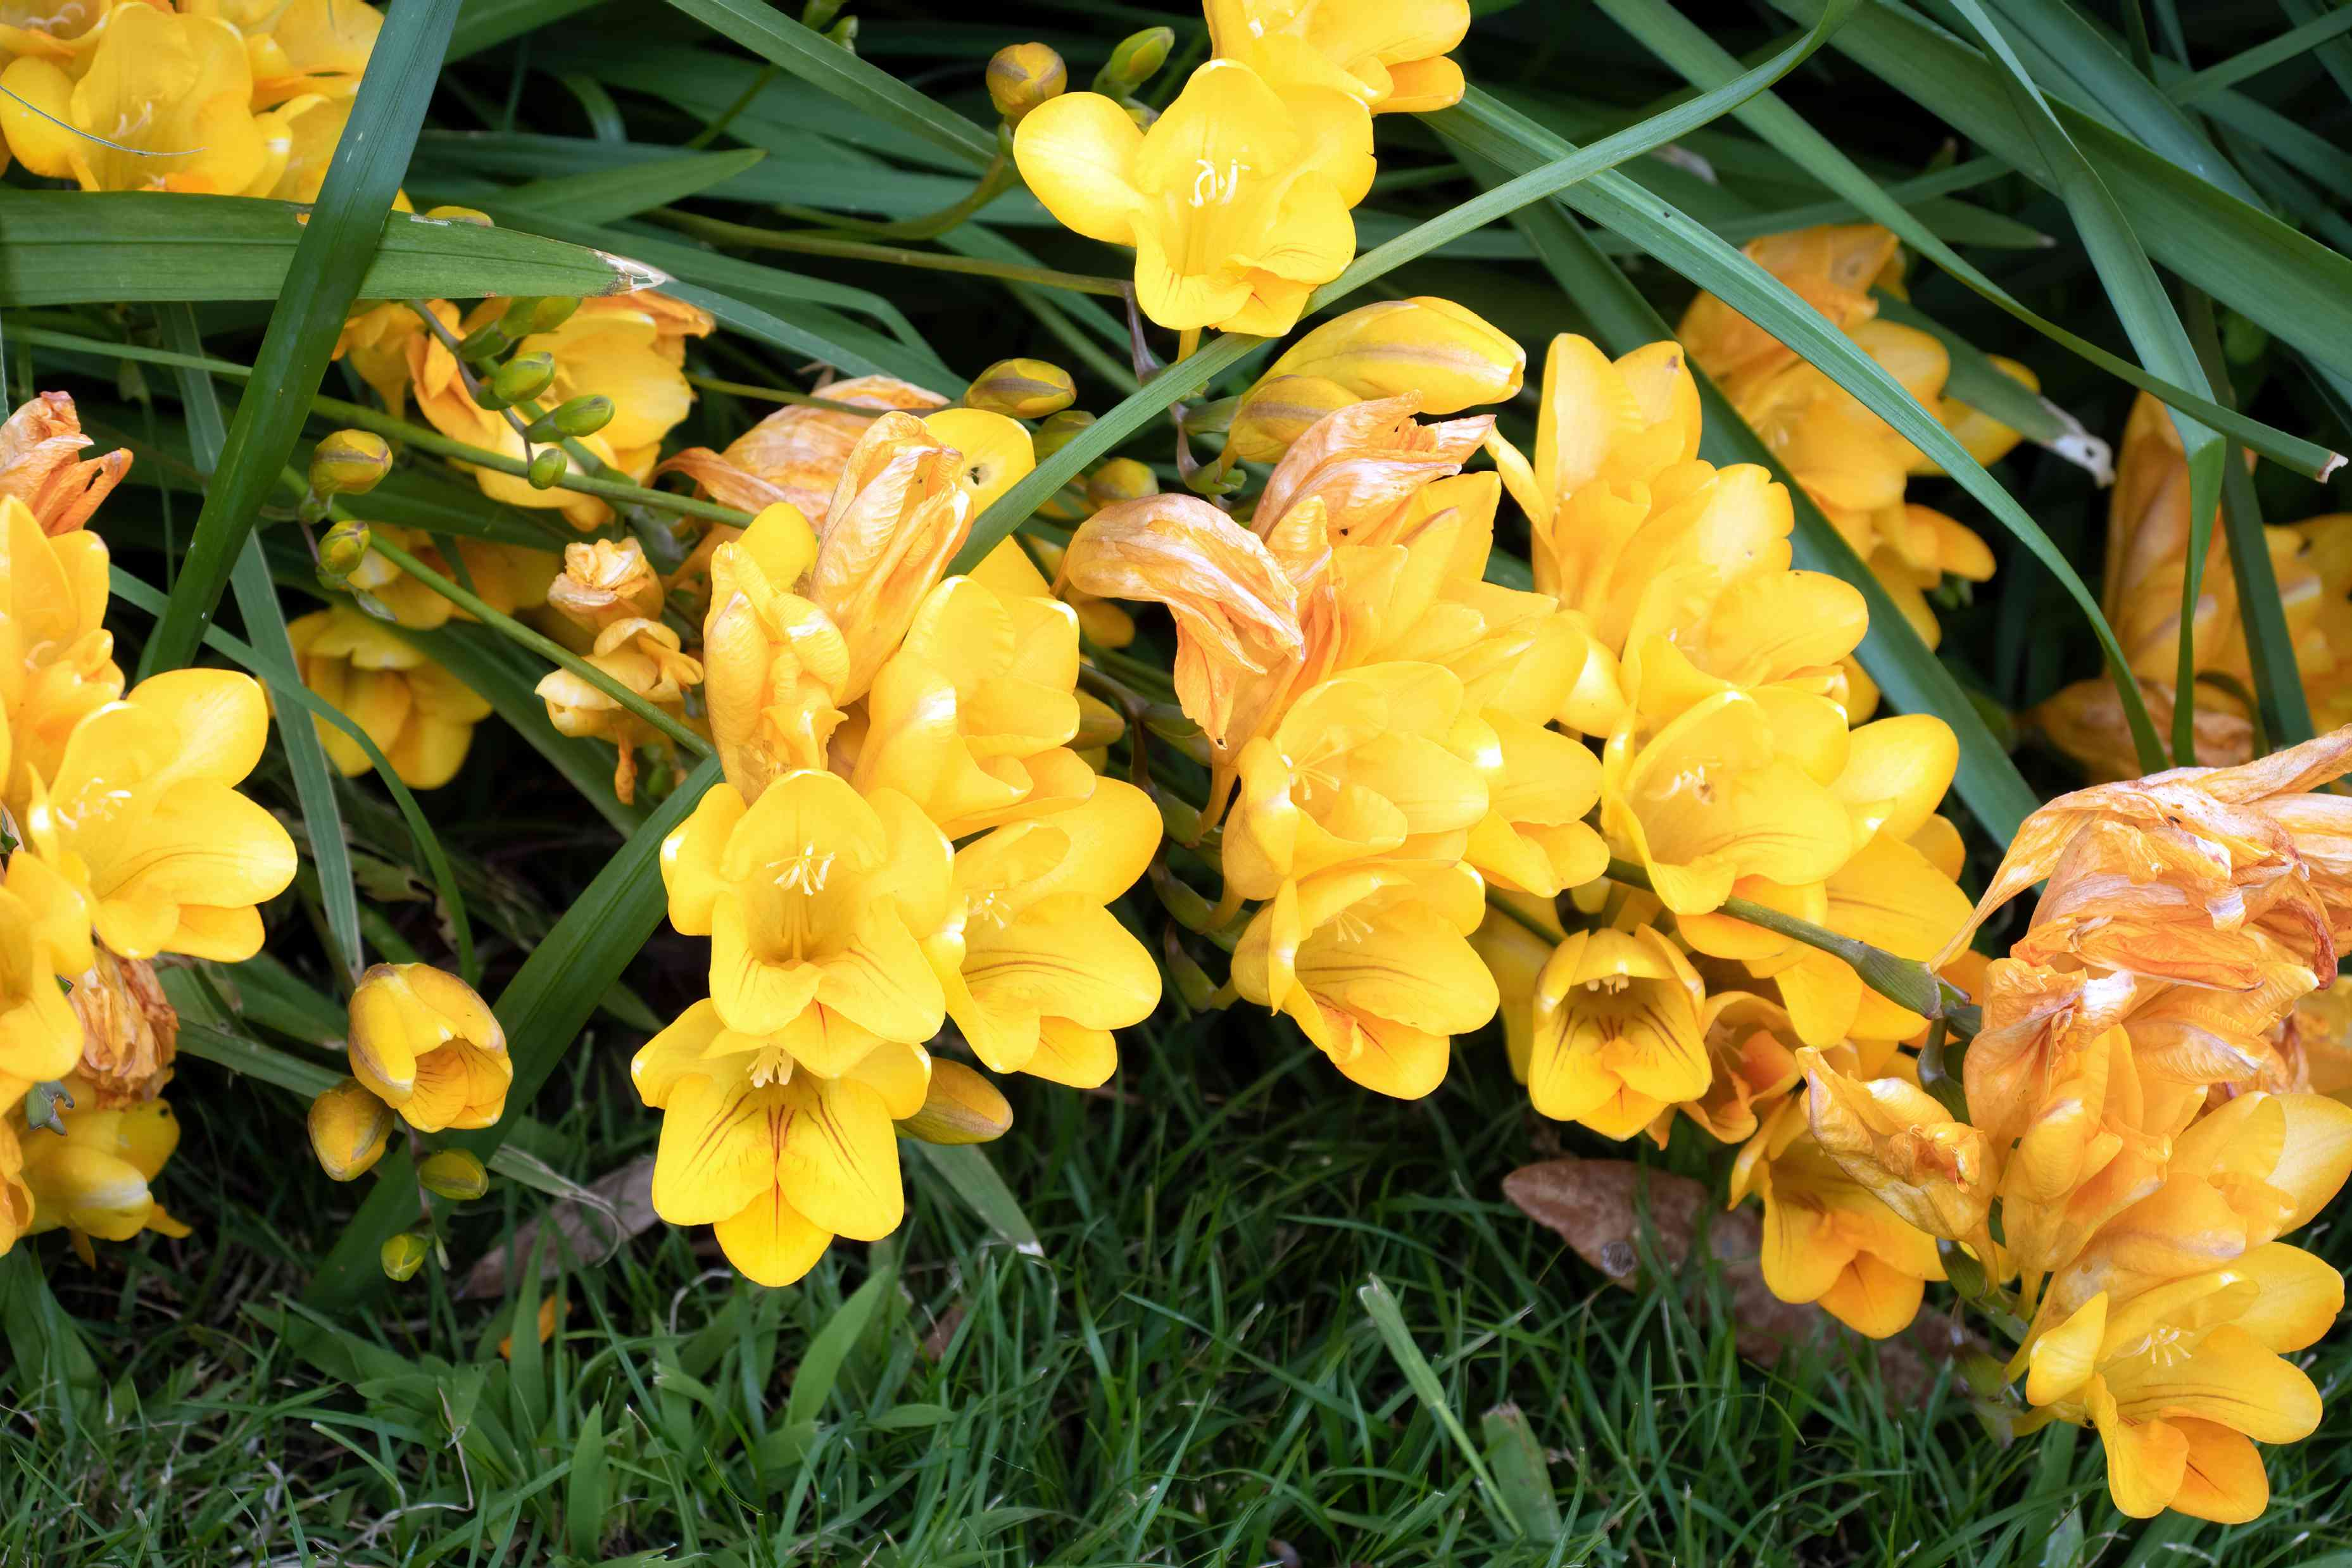 Freesia bulbs with yellow and orange tubular flowers hanging under long leaf blades